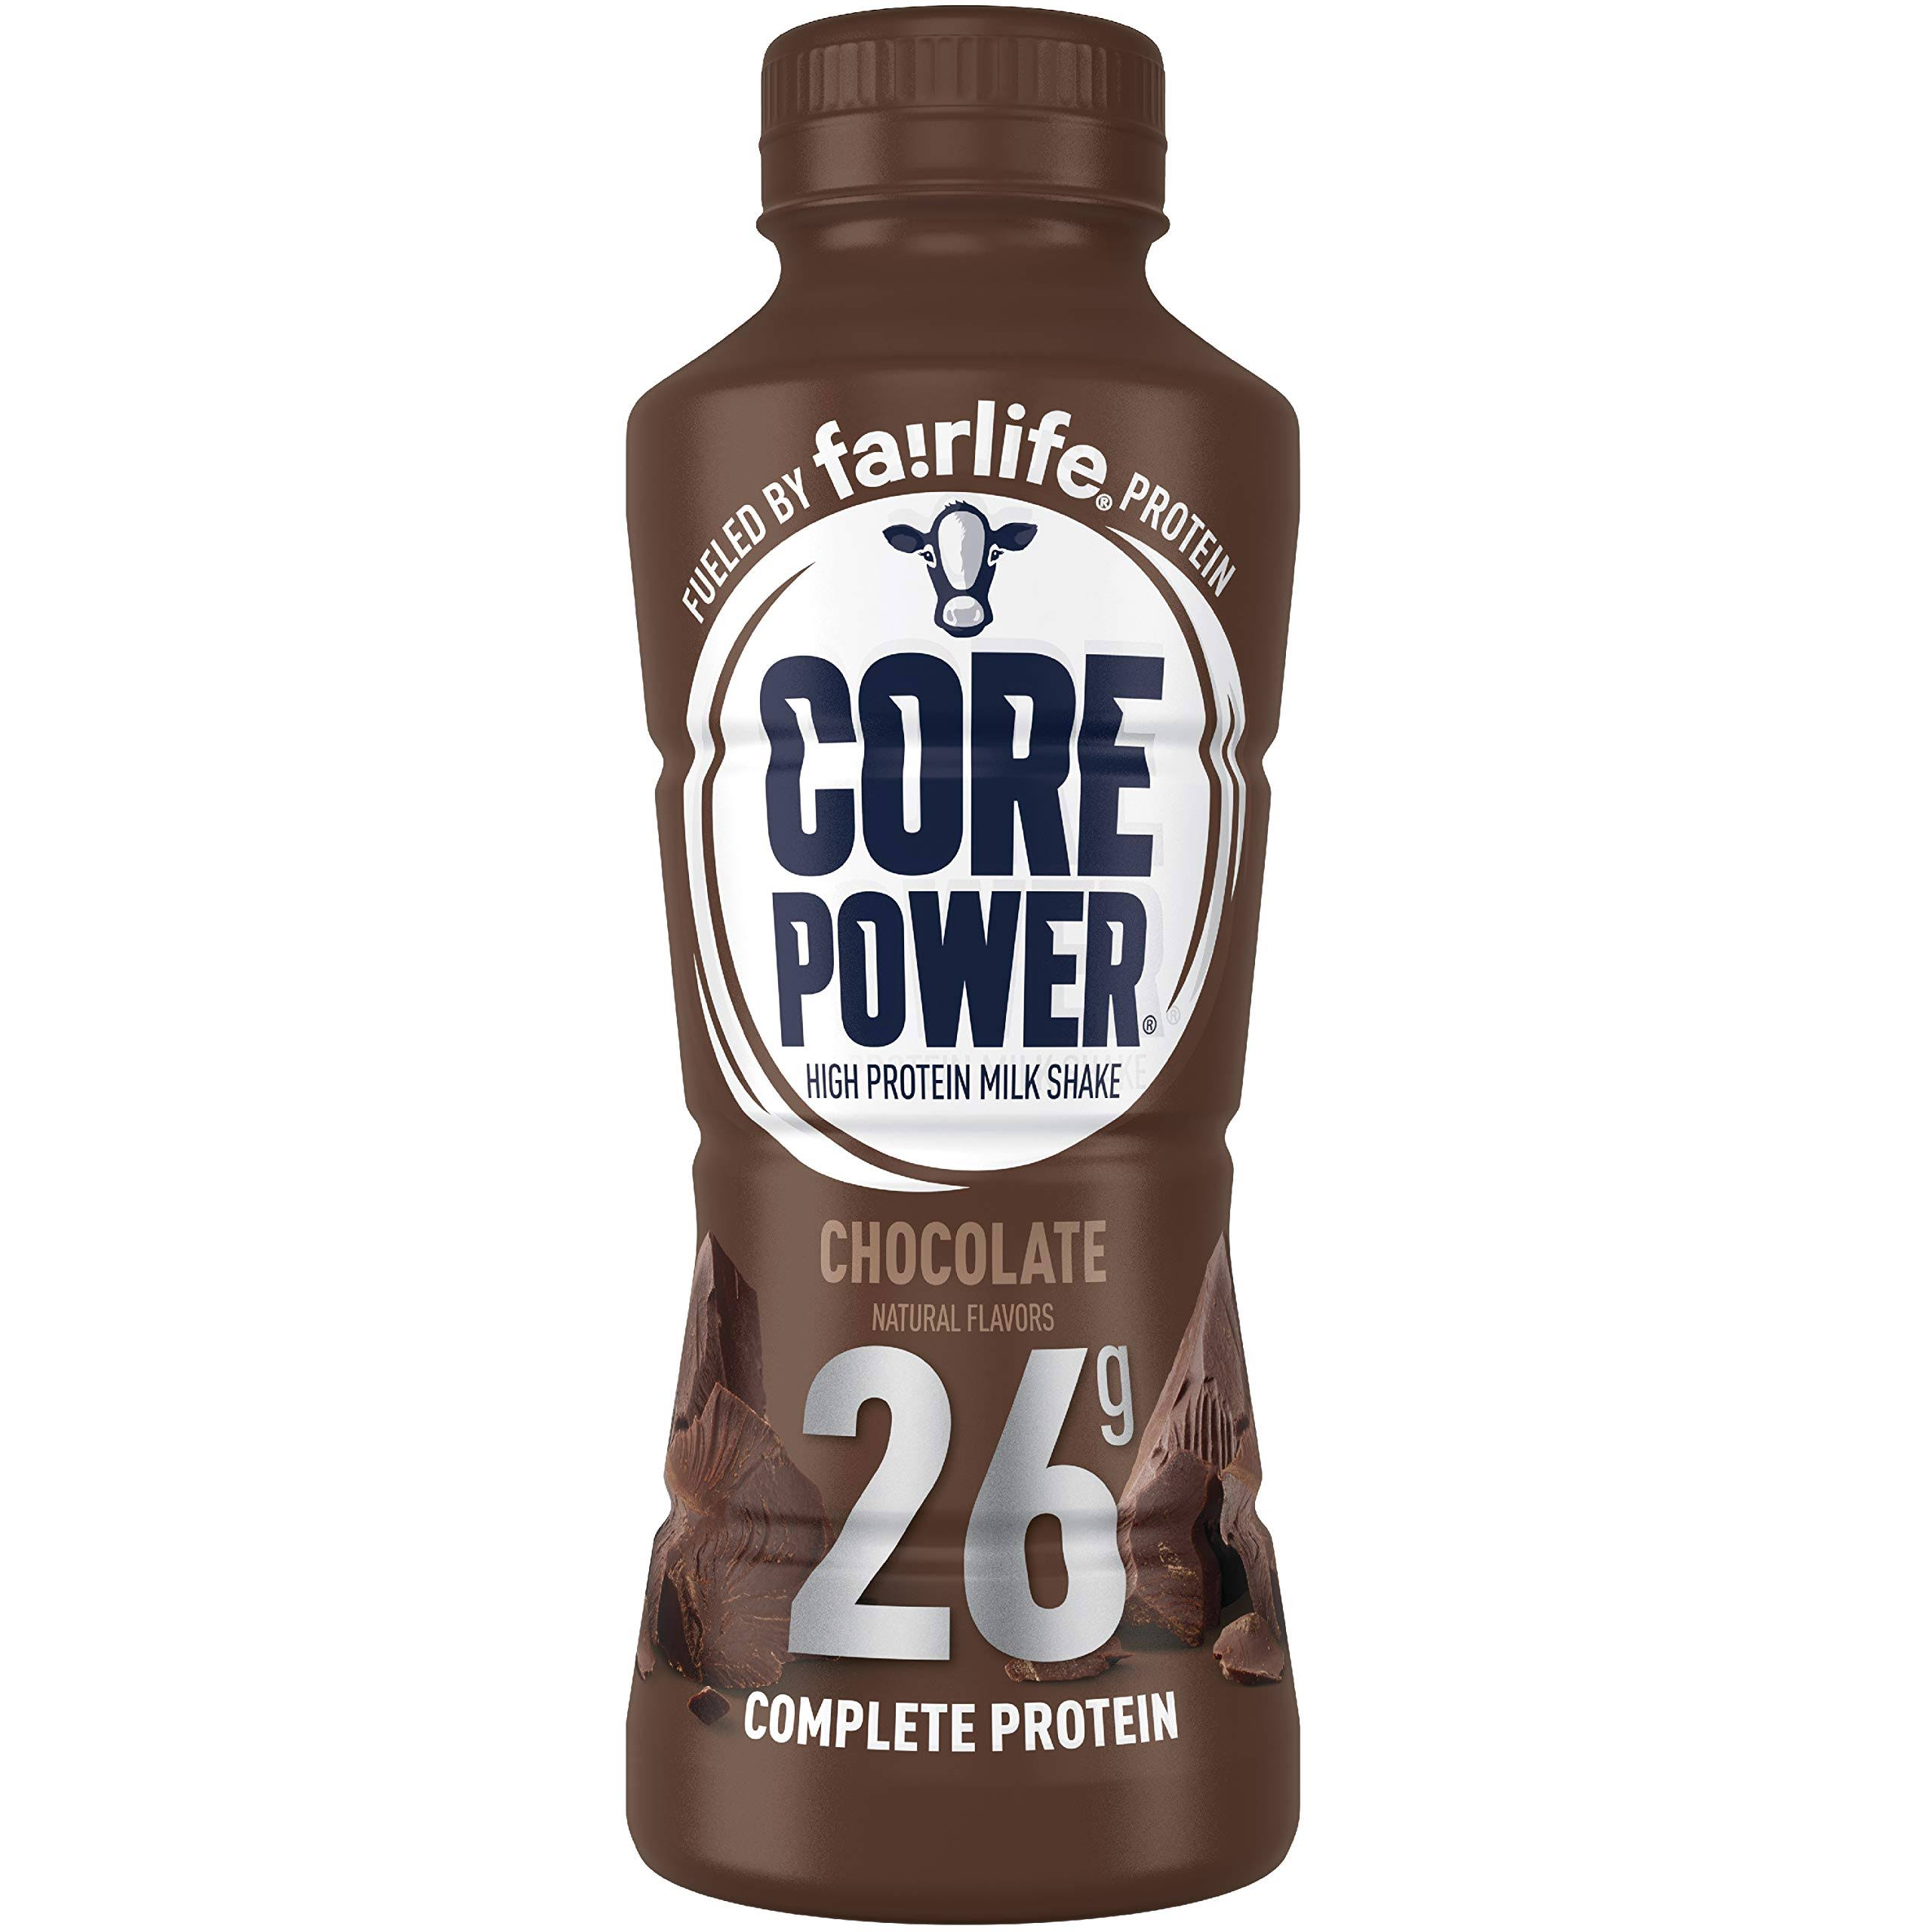 Core Power Milk Shake, High Protein, Chocolate - 14 fl oz